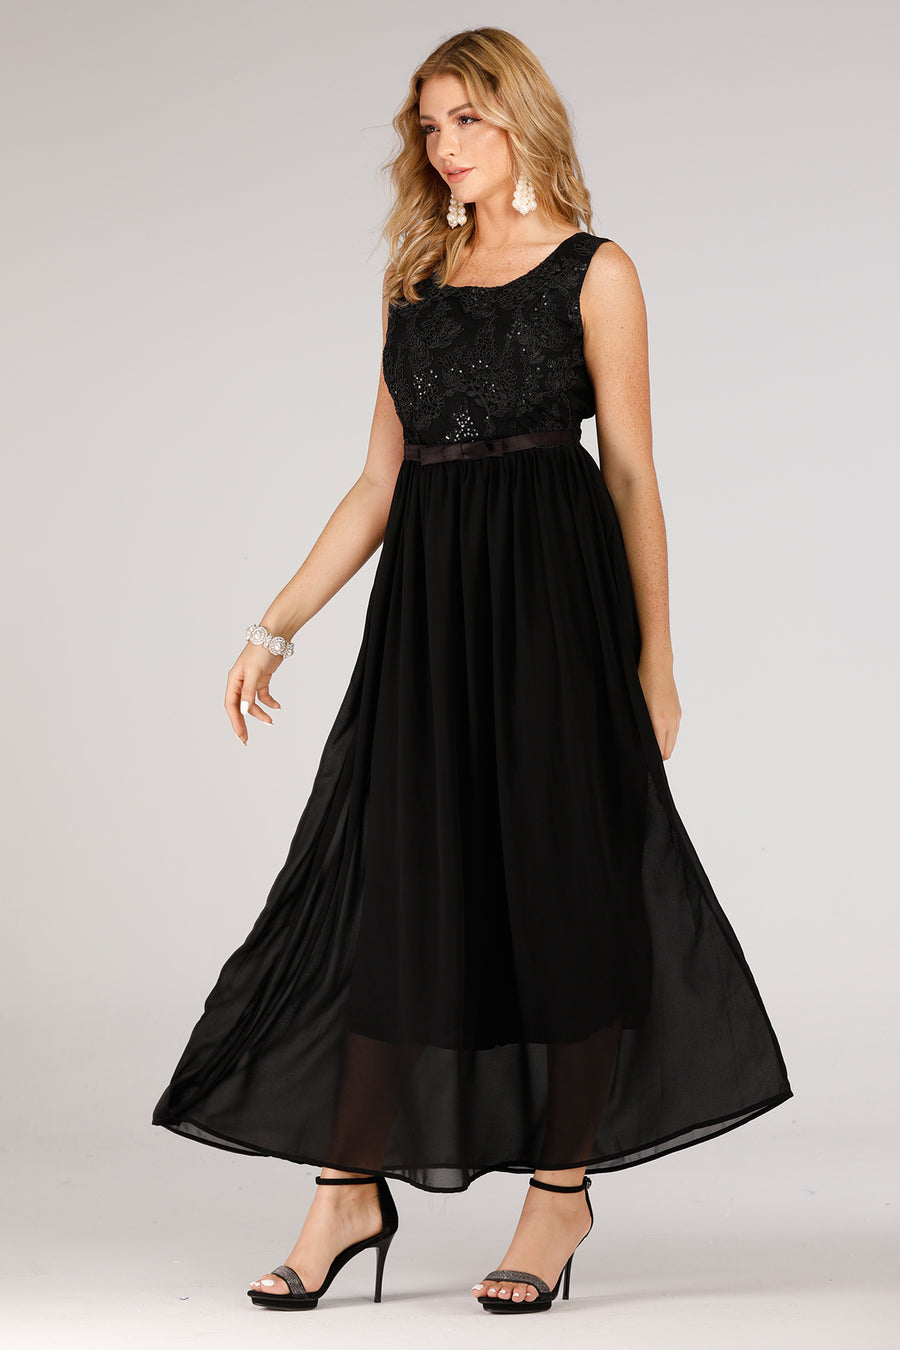 Black Evening Dress With Lace Top - Mantra Pakistan